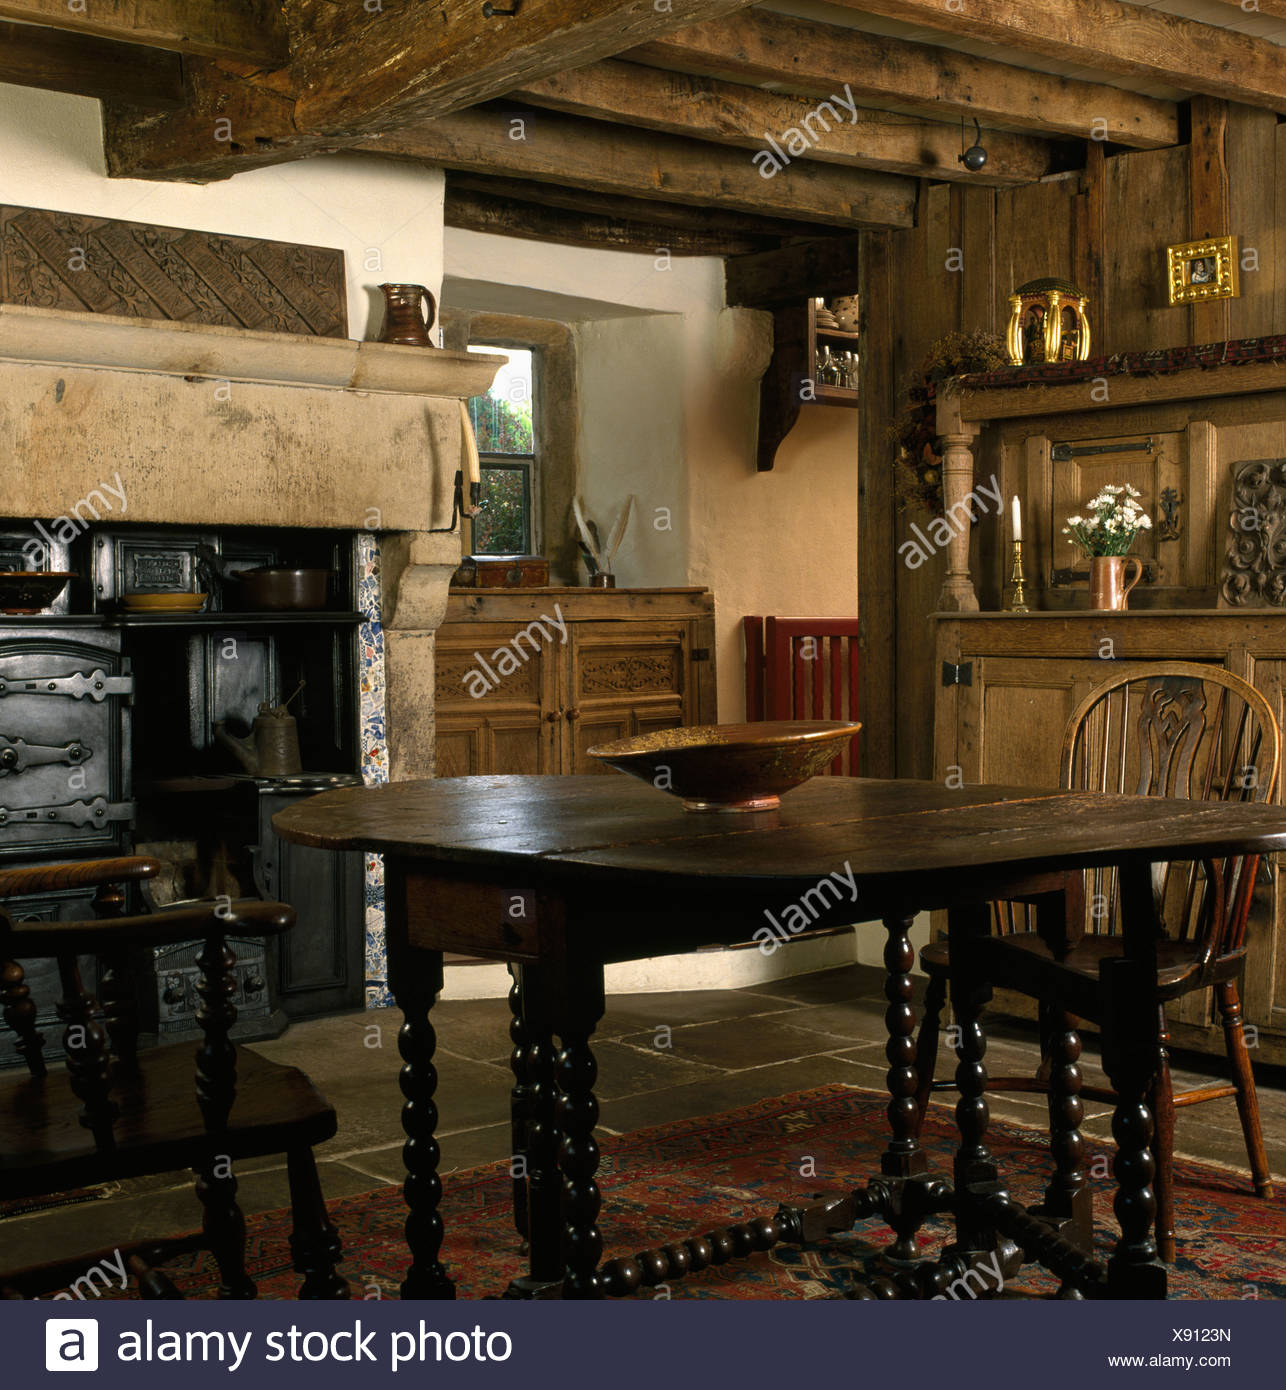 Windsor chairs and Jacobean oak table with barley-twist legs in beamed country dining room with old cast-iron range in fireplace Stock Photo